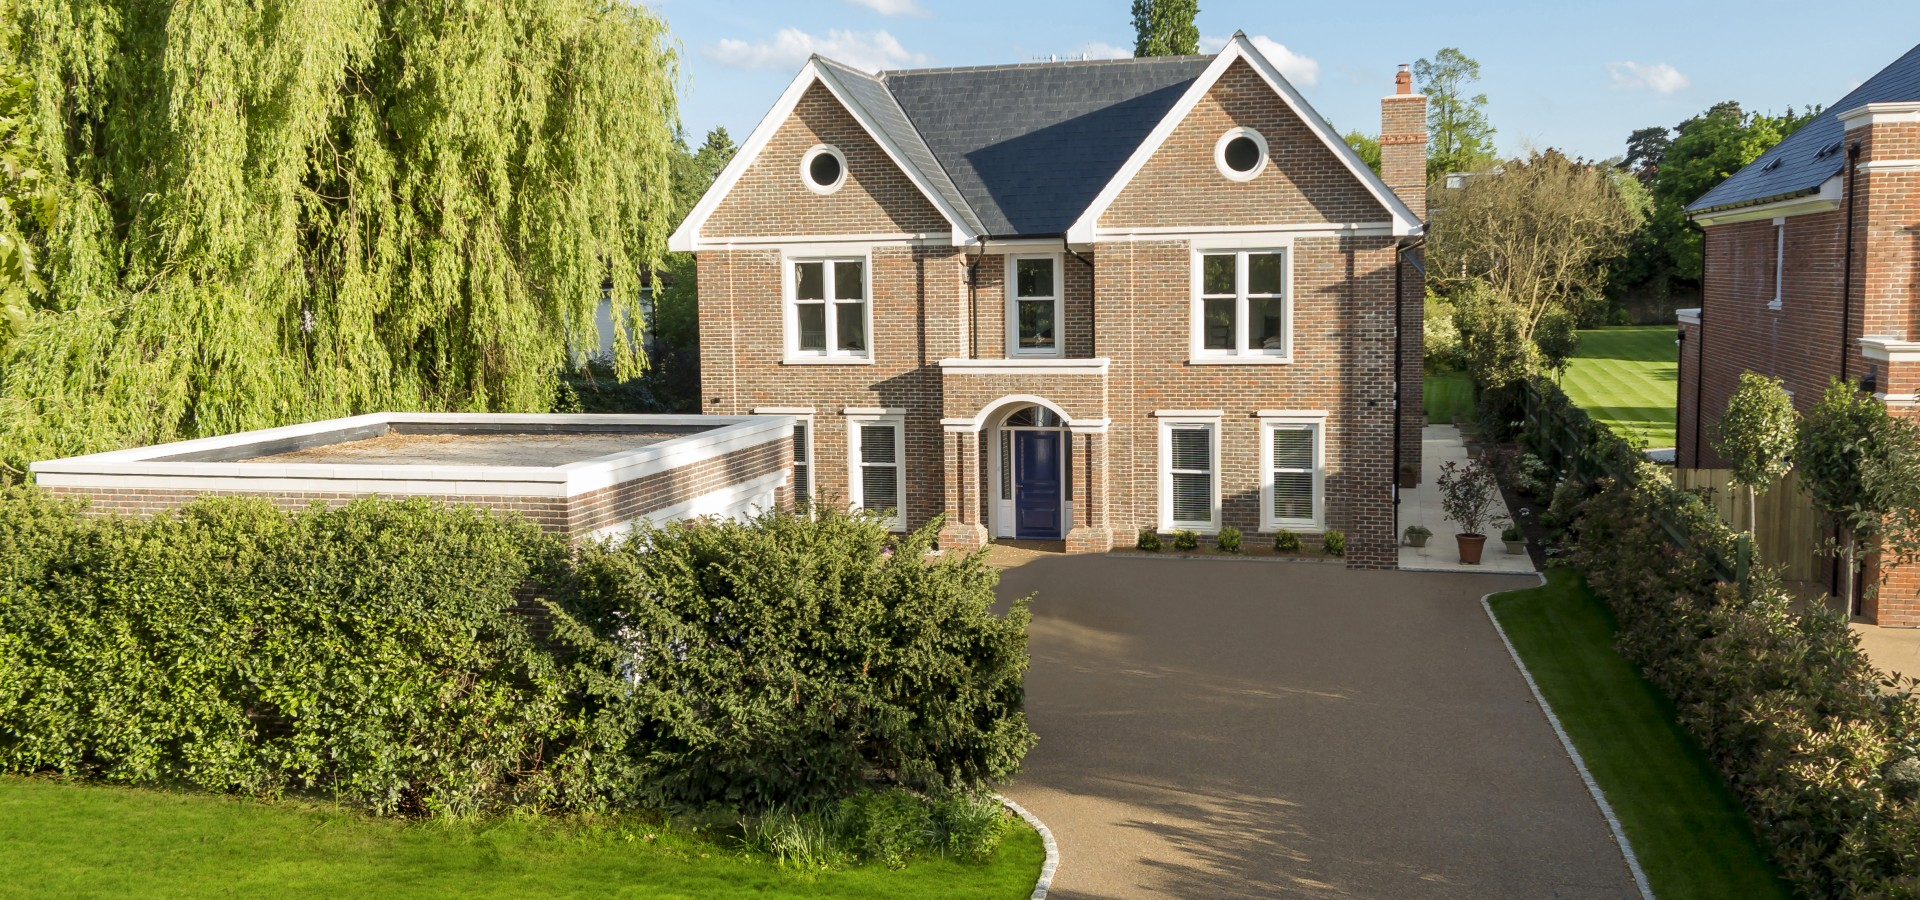 Bespoke Success in Sandown Avenue